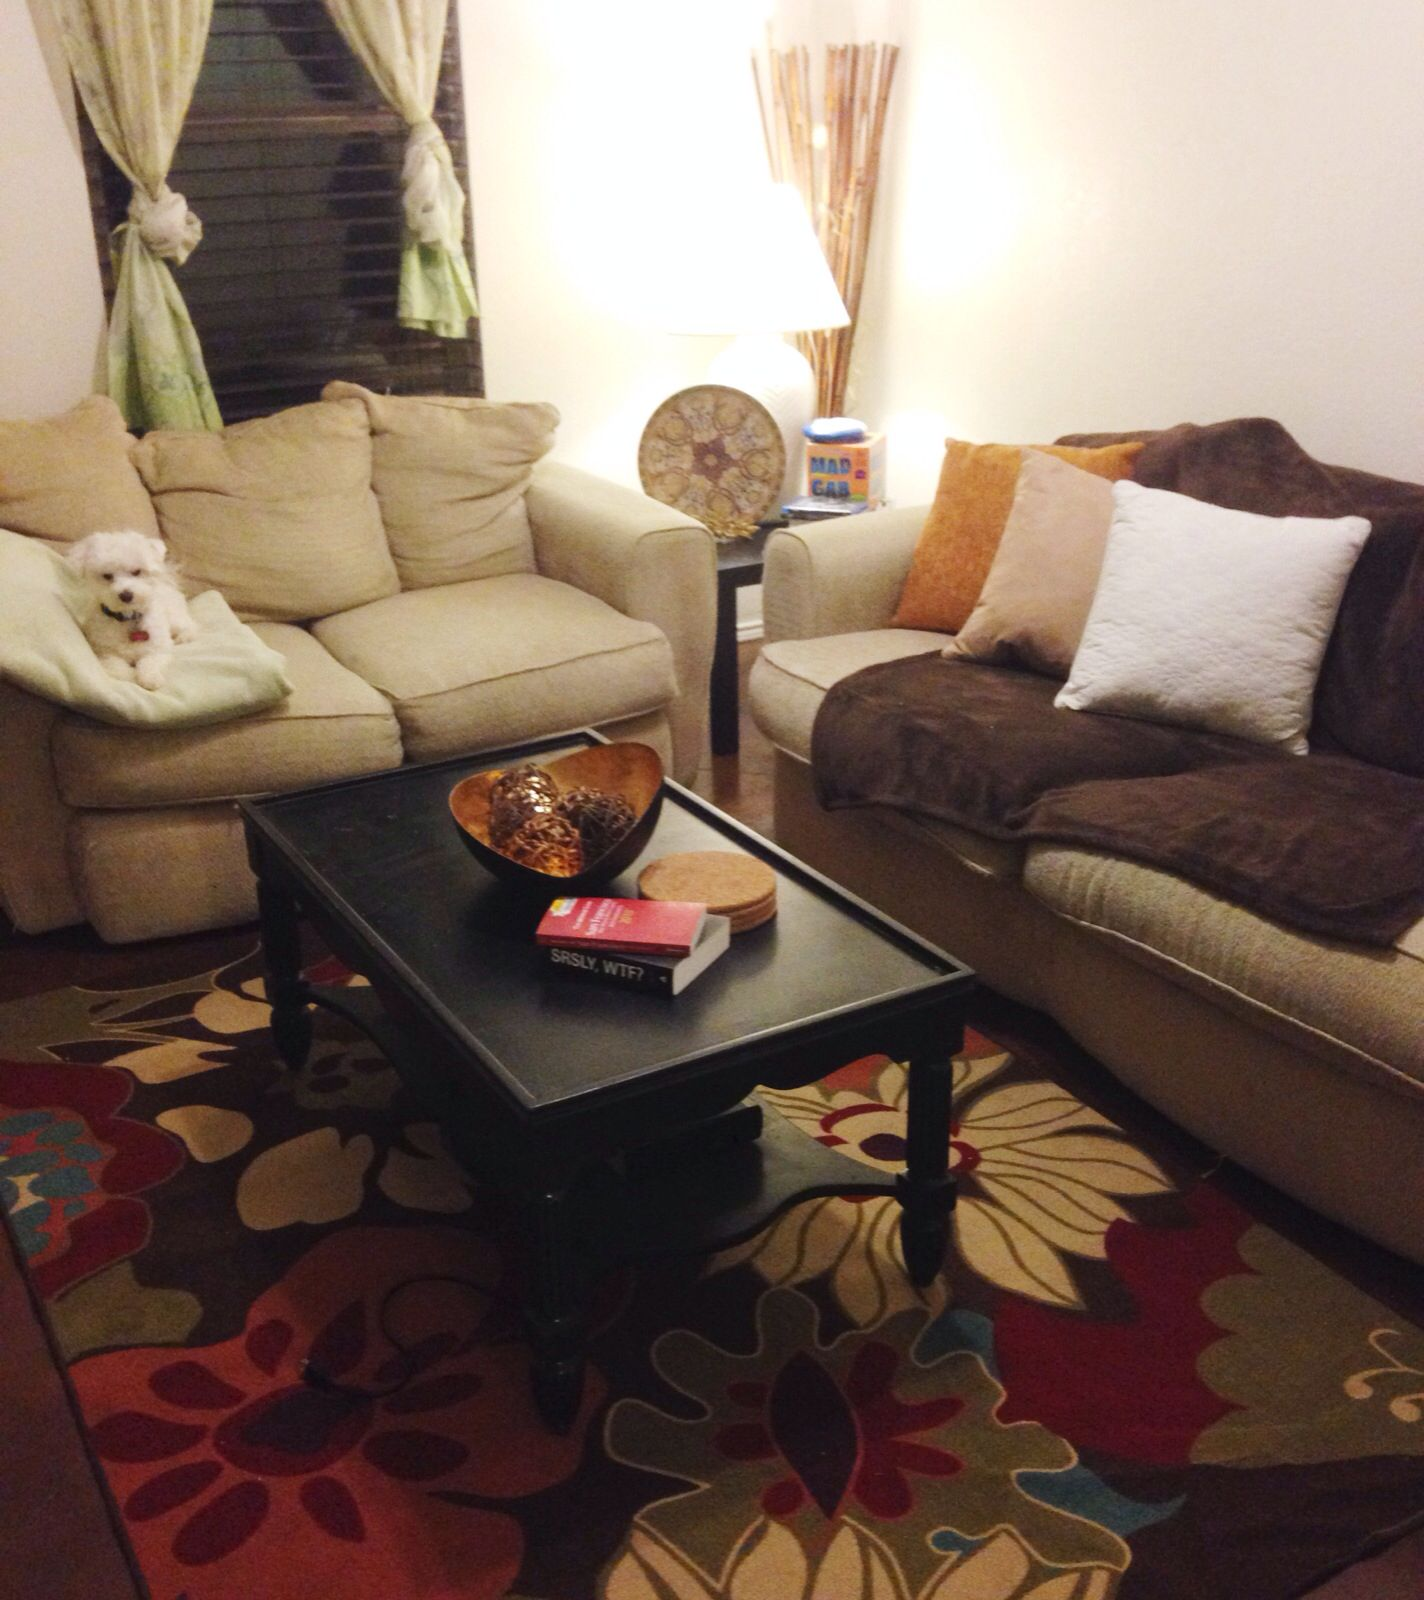 College apartment living room ideas for cheap I bought mostly